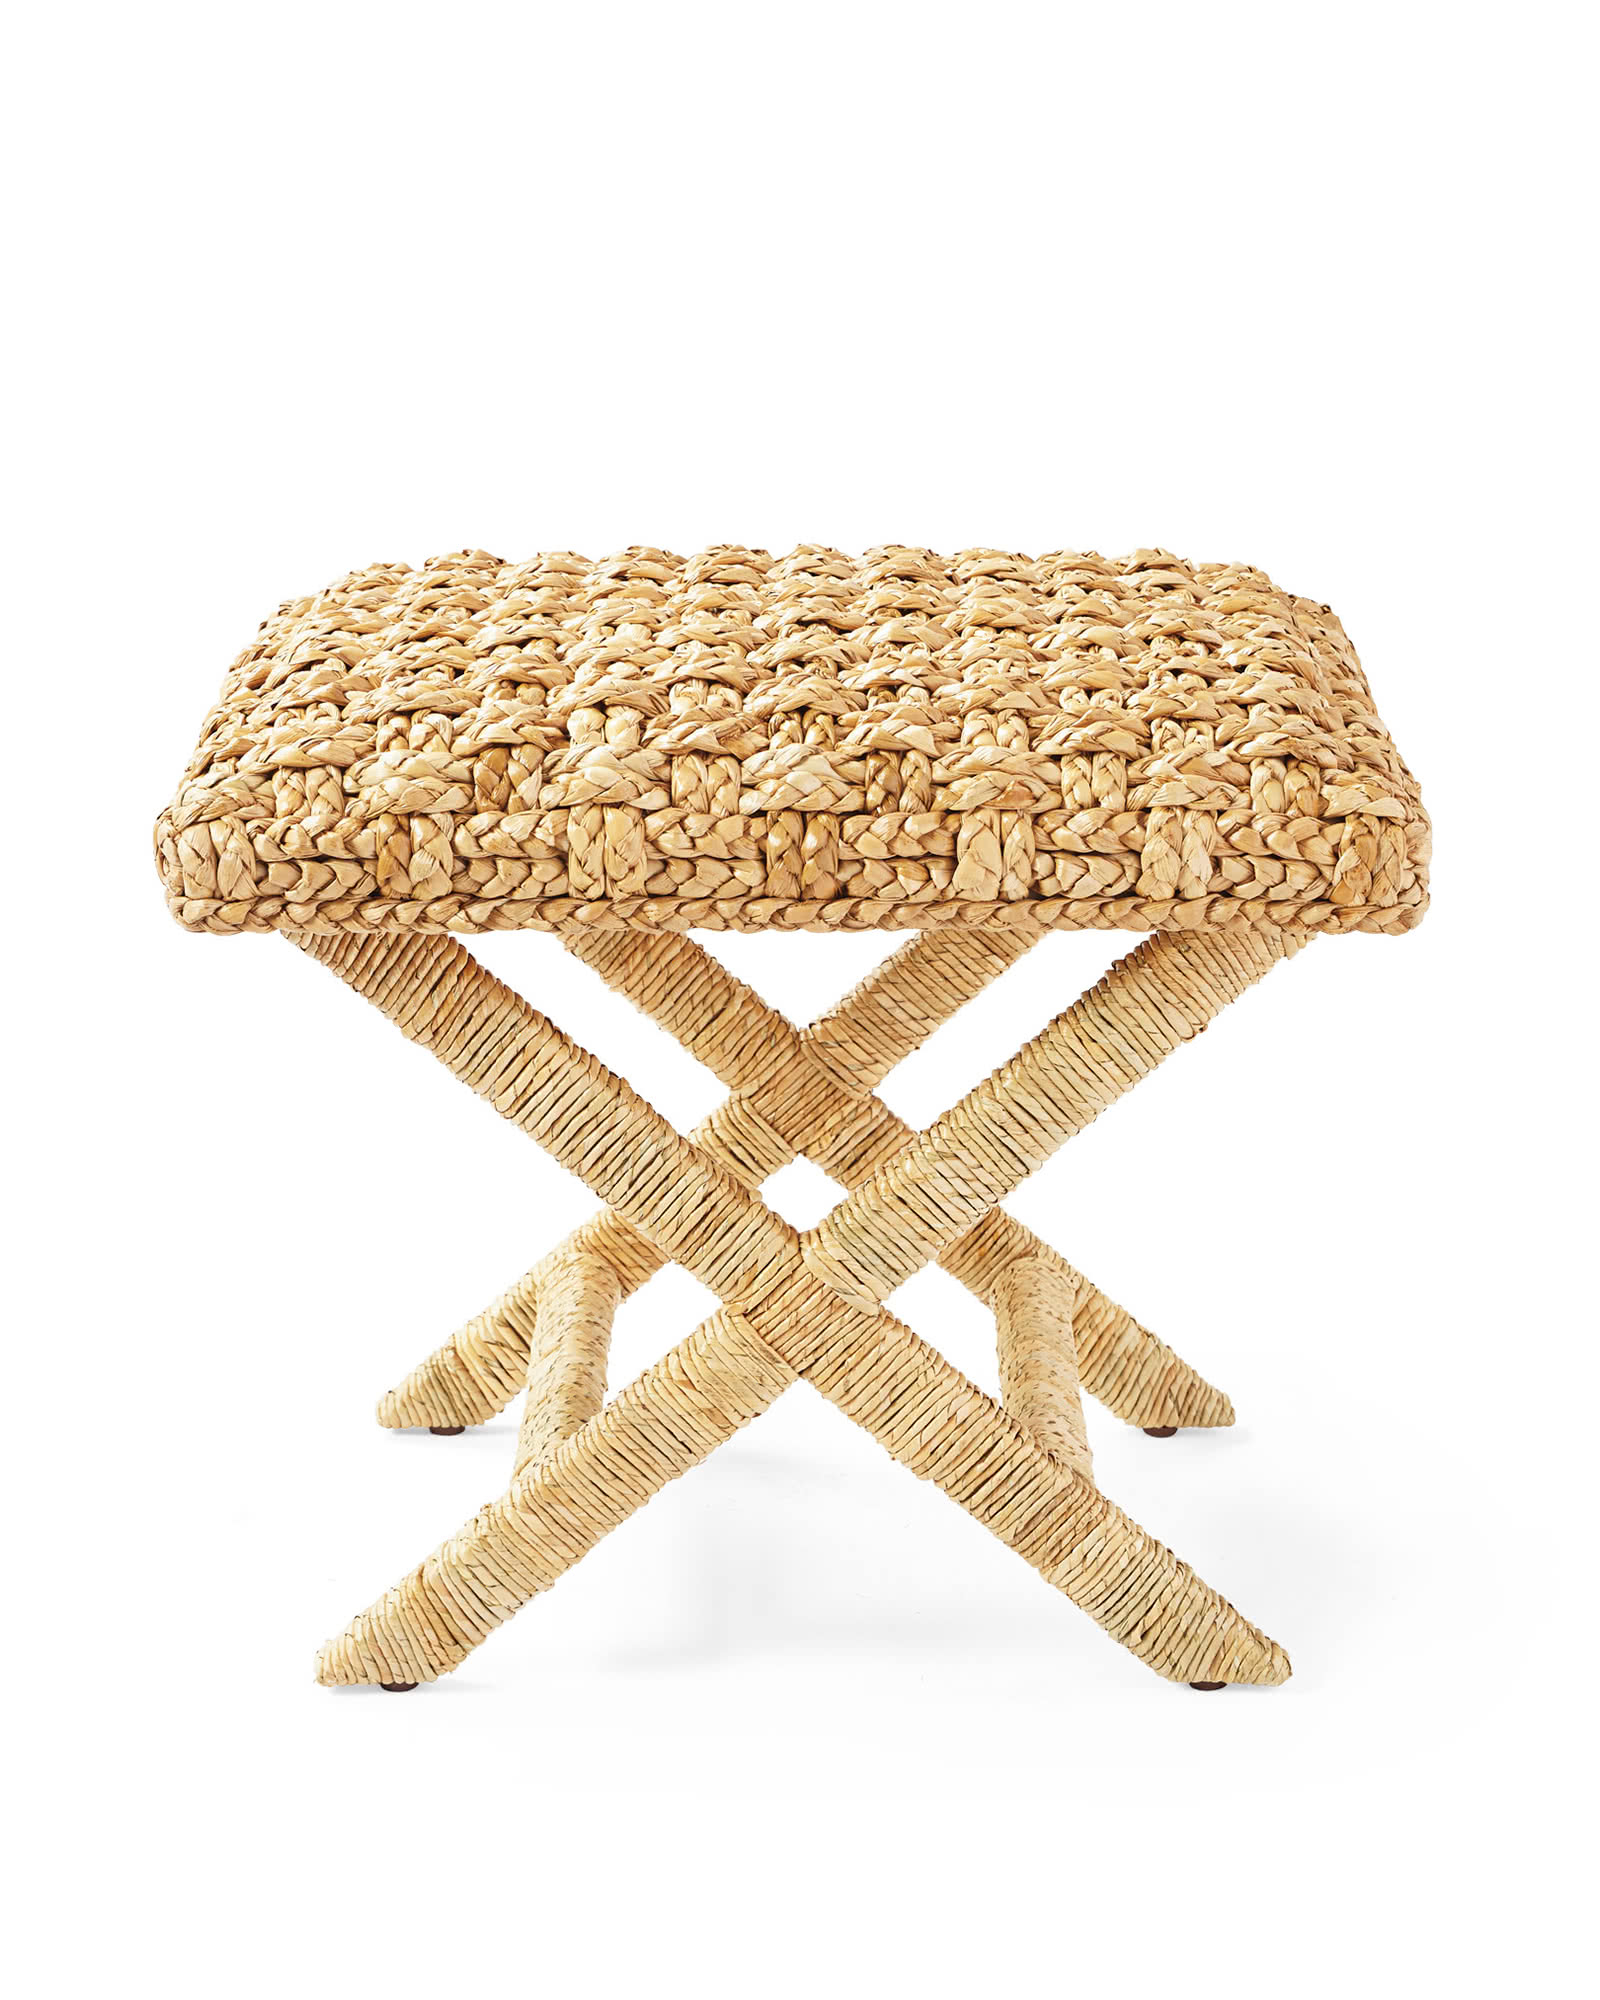 Costa Woven X-Base Stool